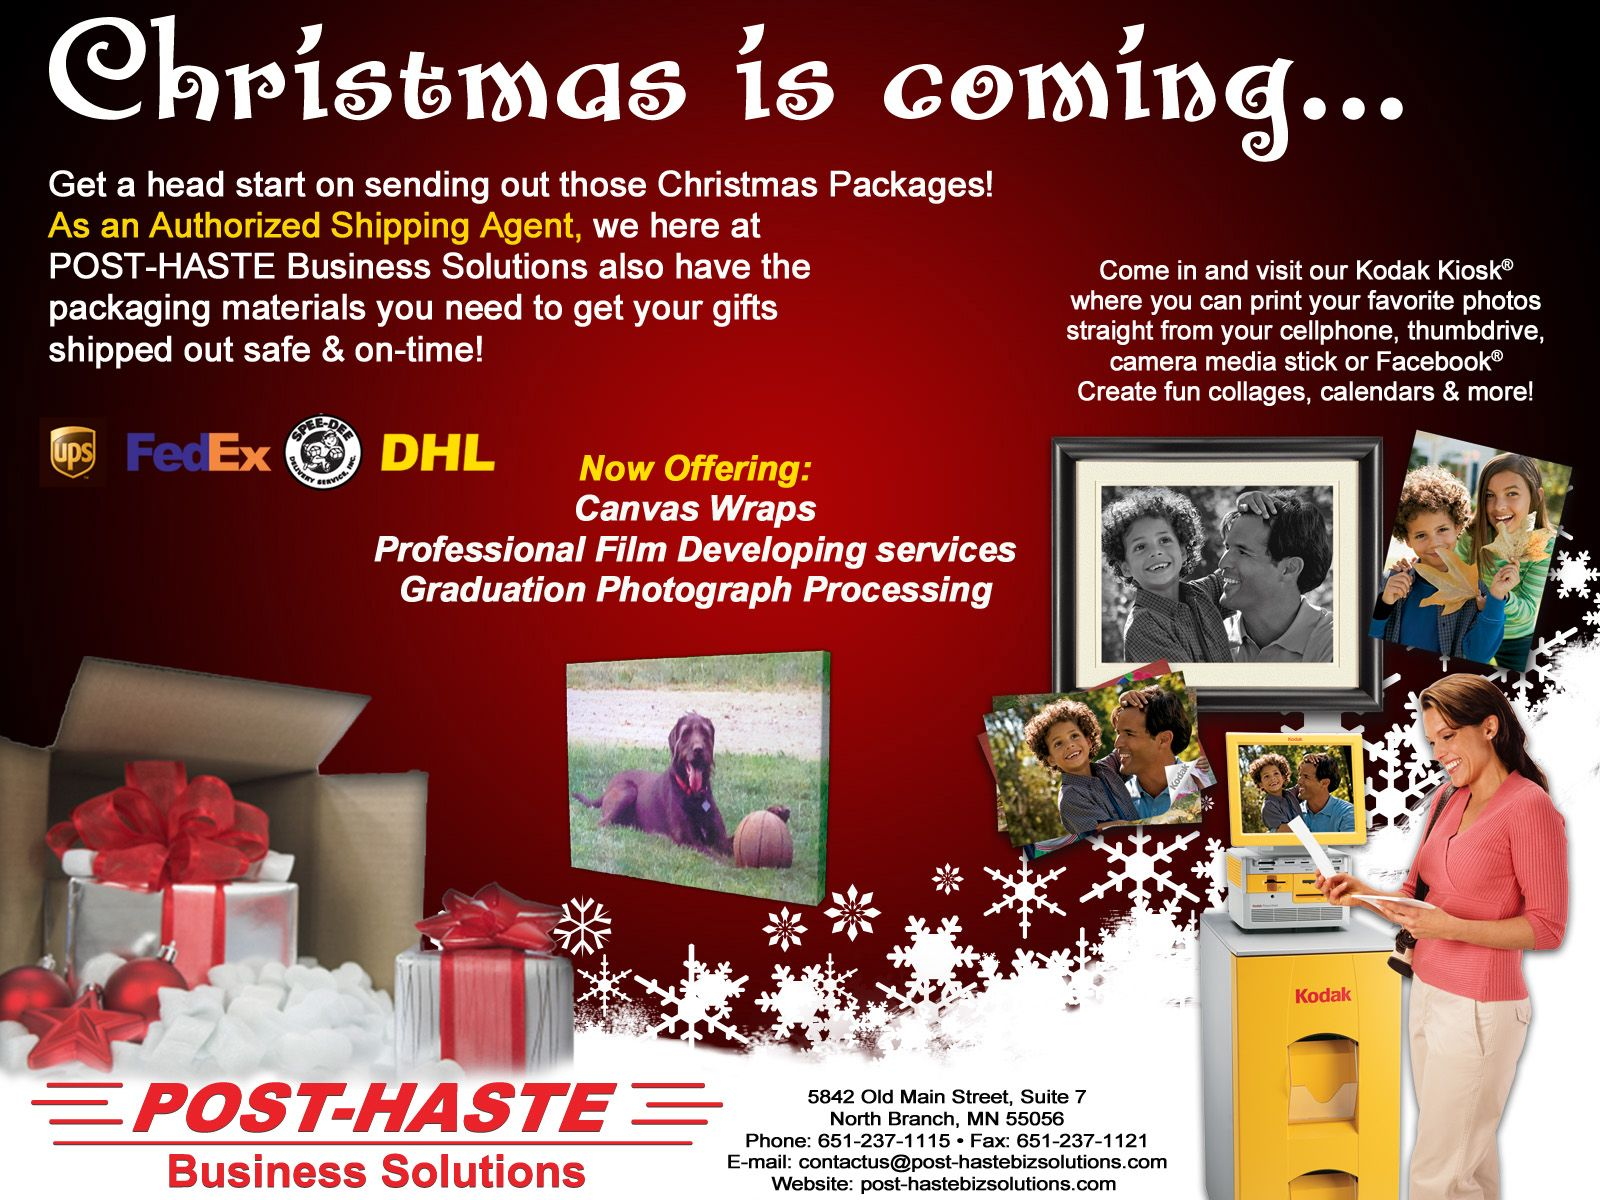 Let POST-HASTE Business Solutions help you with all your Christmas ...